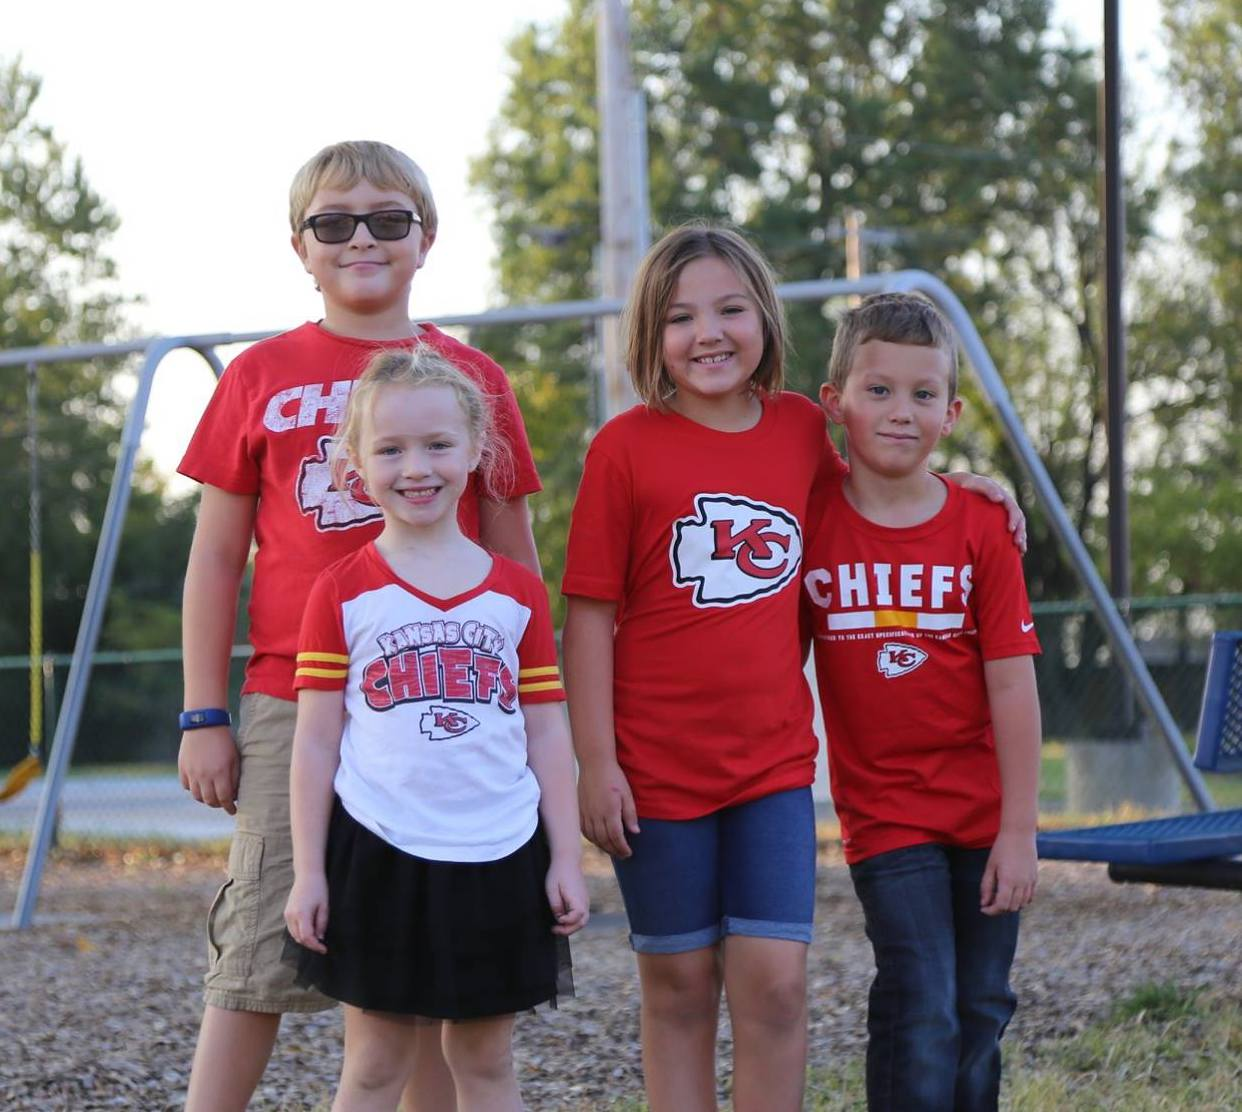 SCA elementary students Logan and Mallory Moenig with Addi and Myles Jeffries get excited to cheer on the Kansas City Chiefs on Red Friday on the campus of Summit Christian Academy.